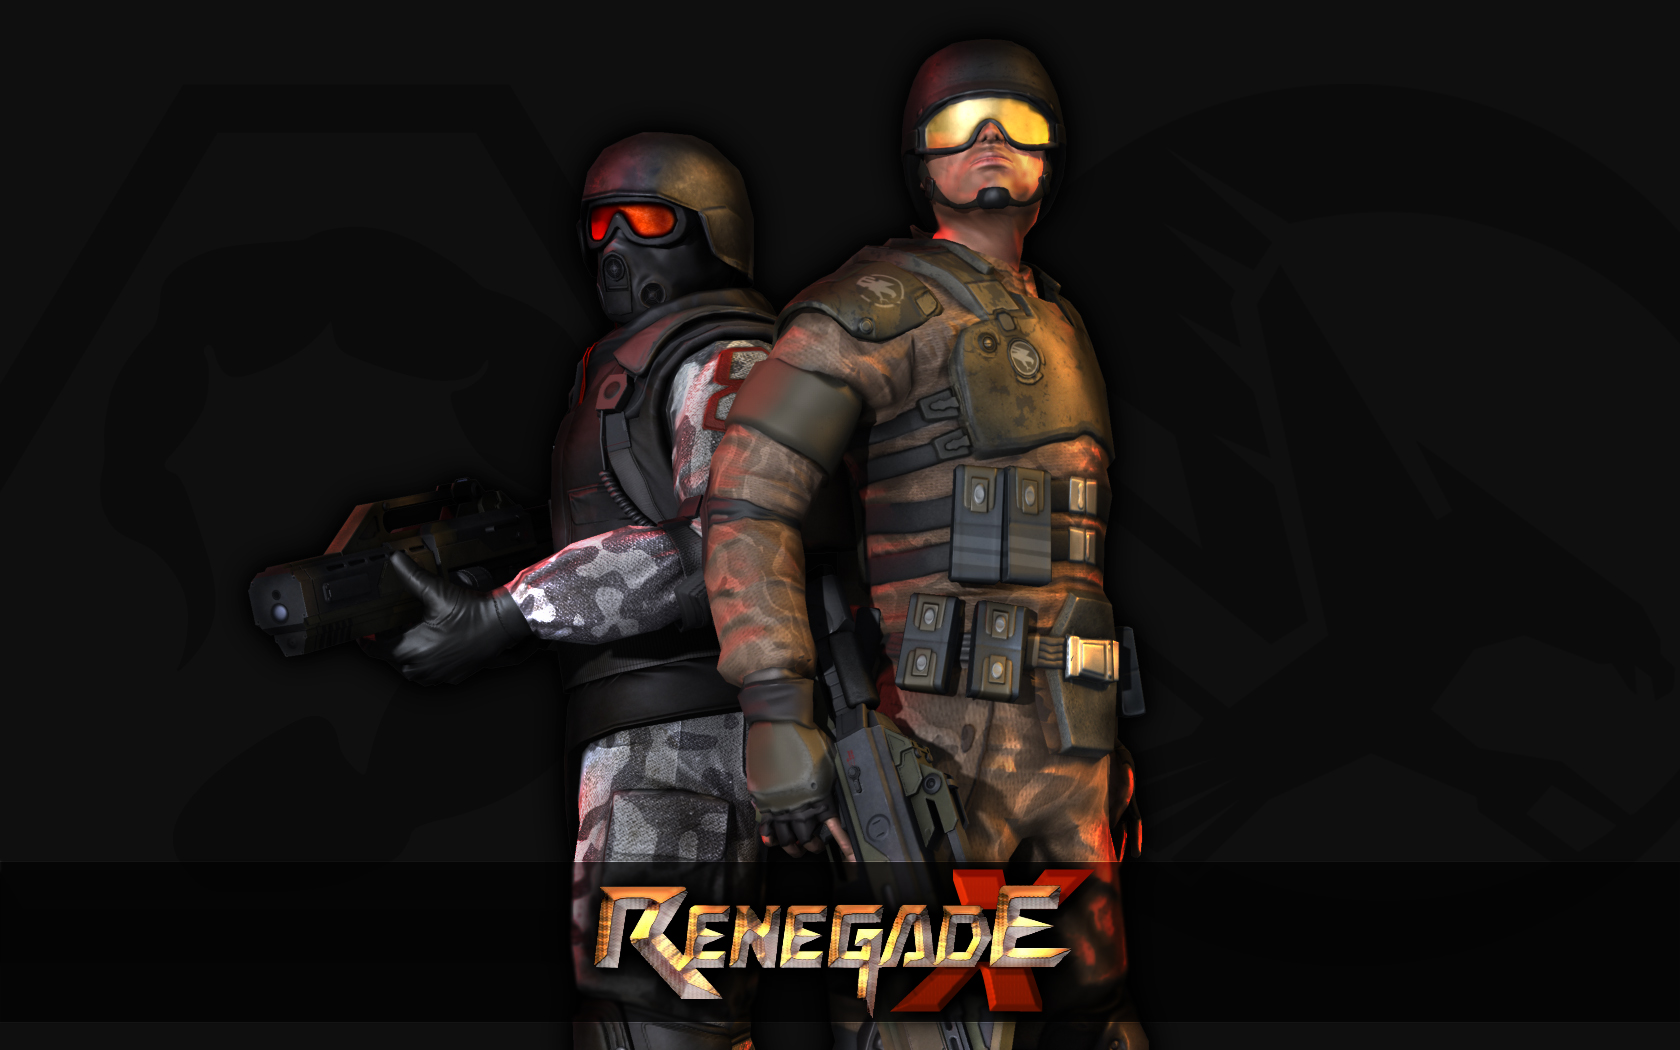 Media RSS Feed Report media GDI and Nod Soldier Wallpaper (view original)